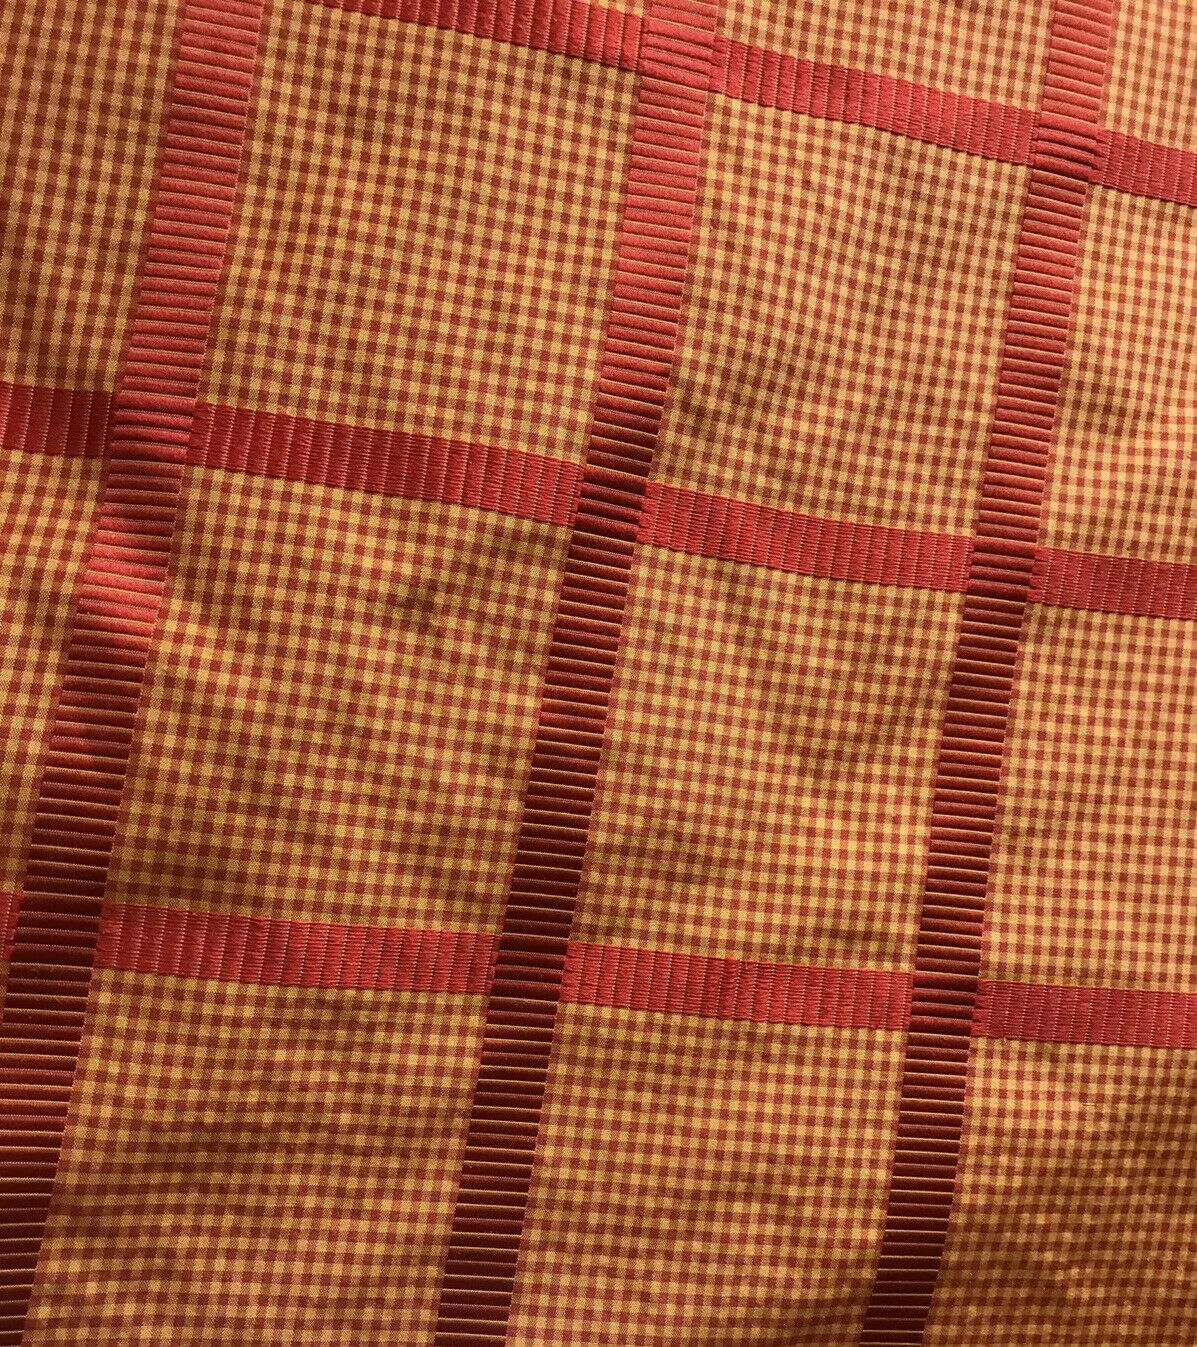 NEW! Designer 100% Silk Taffeta Gingham Ribbon Stripes Plaid Fabric -Red Gold